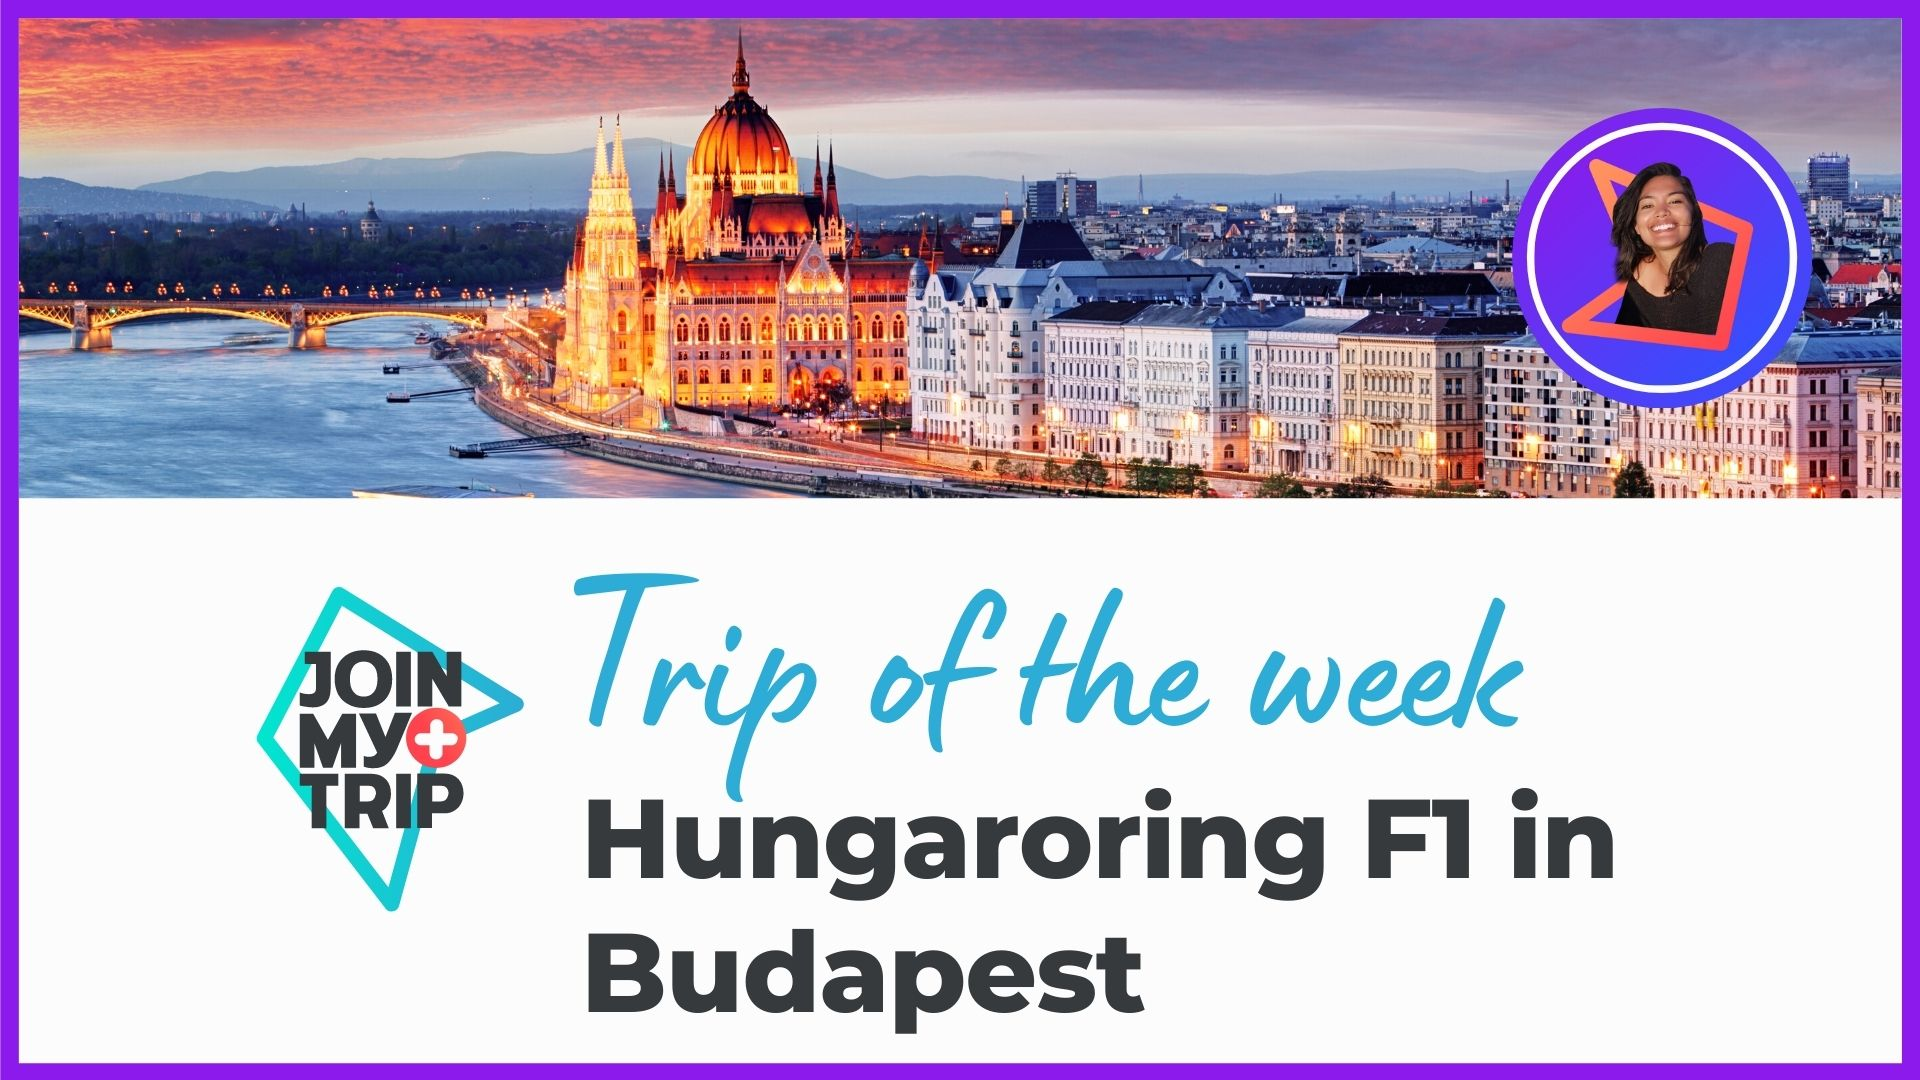 Hungaroring F1 in Budapest, Trip of the week.